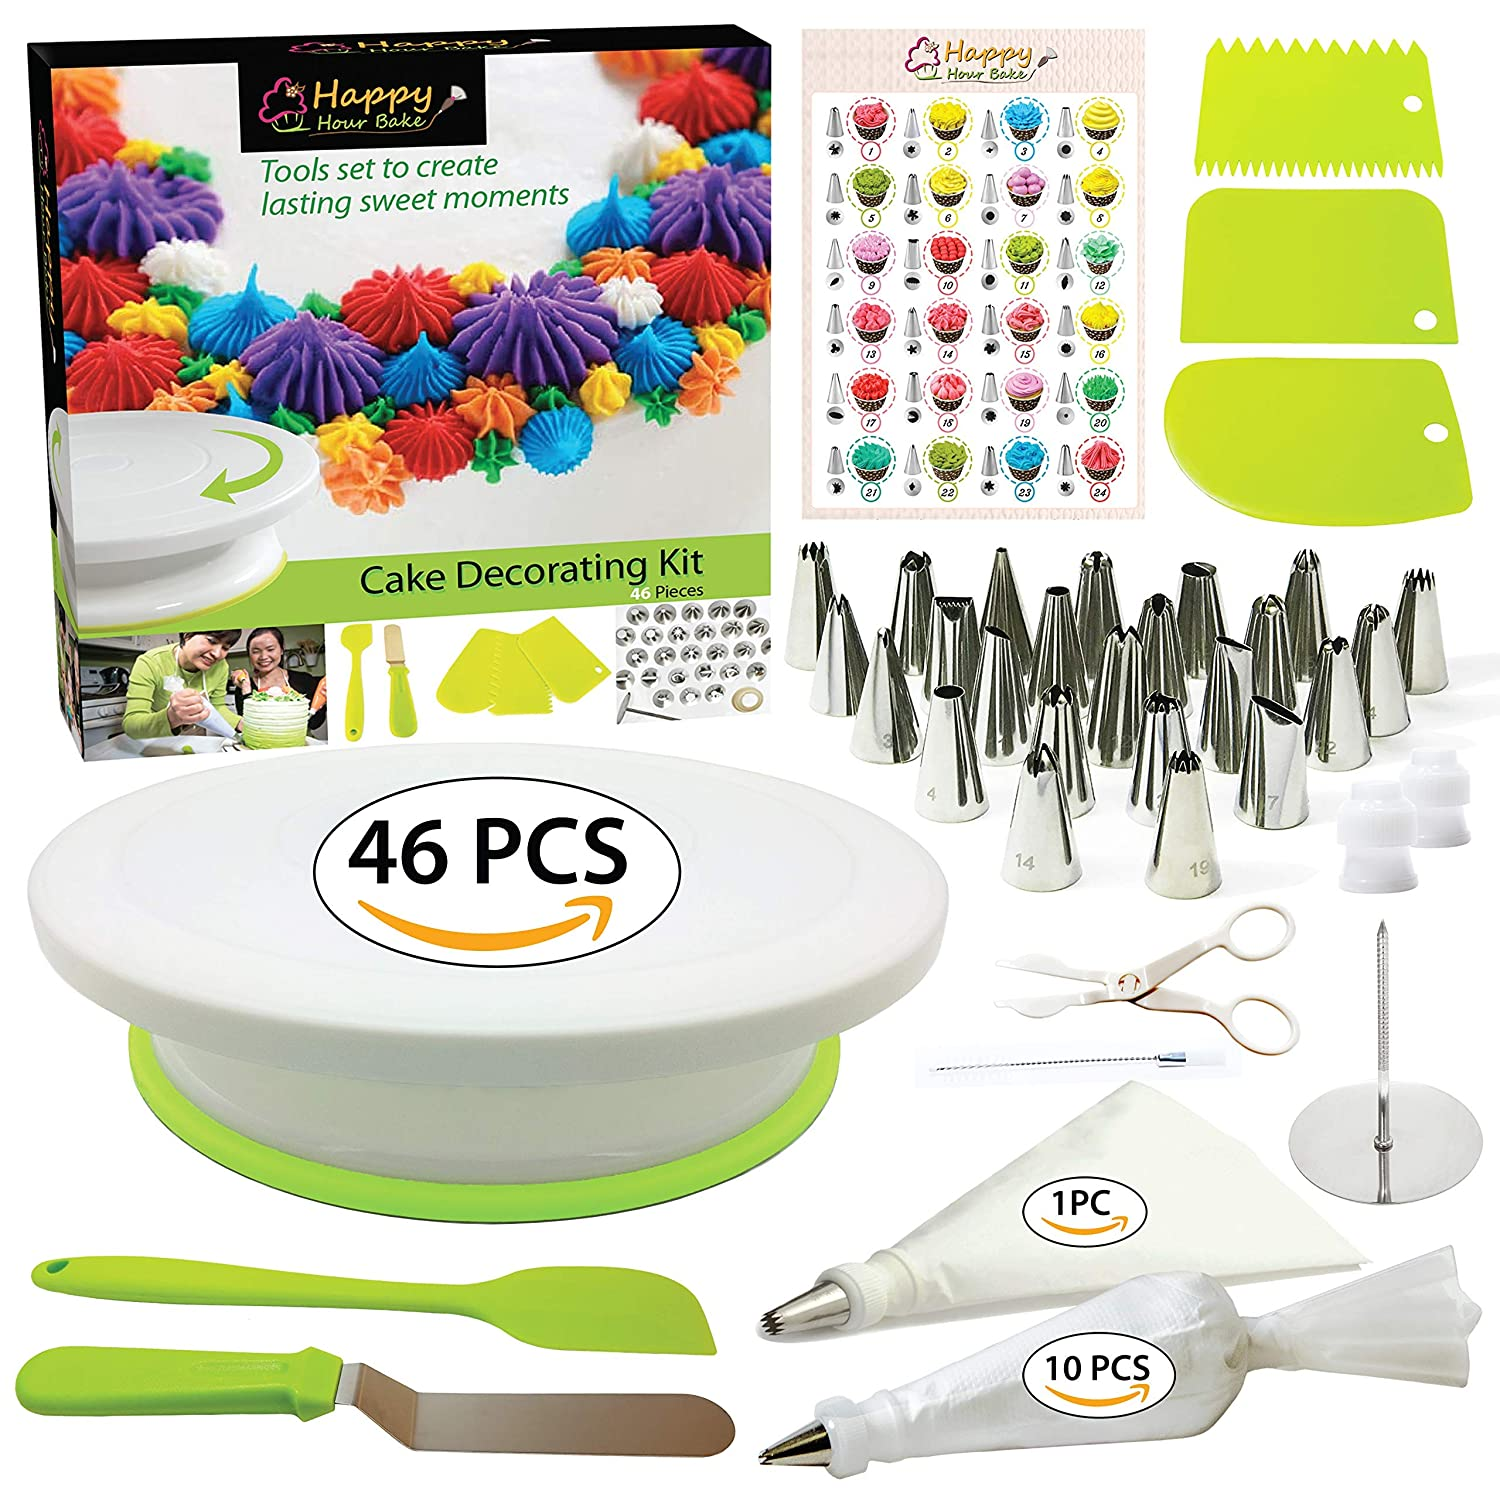 Cake Decorating Supplies Kit with Cake Turntable - Baking kit - Silicone Offset Spatula - Pastry Bags - Icing Tips - Cupcake Decorating Kit with Easy Nozzle Set - Professional Tools for Beginners Happy Hour Bake